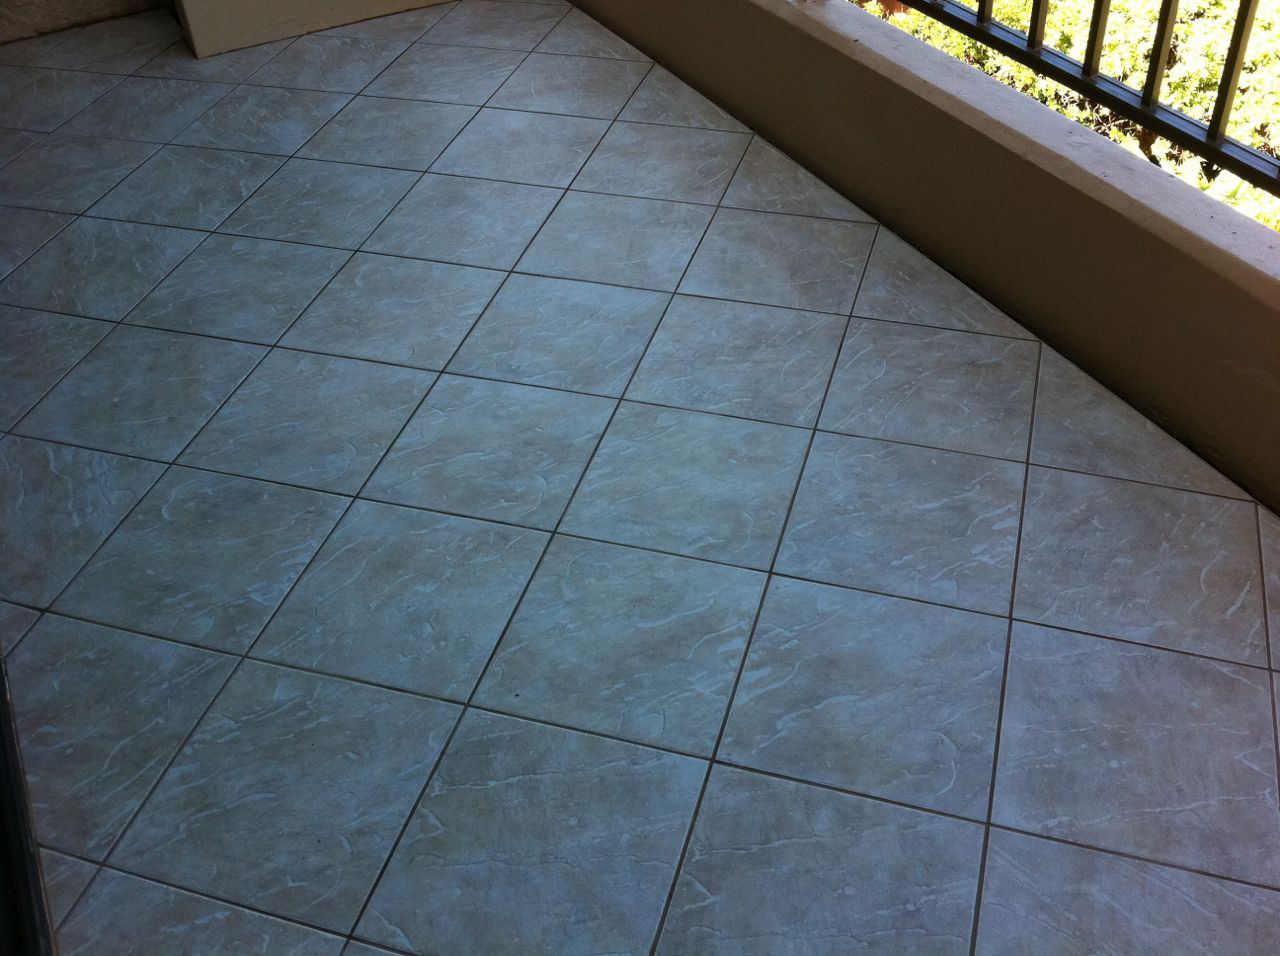 Lanai Tile Installations on Maui   Higher Standard Tile and Stone